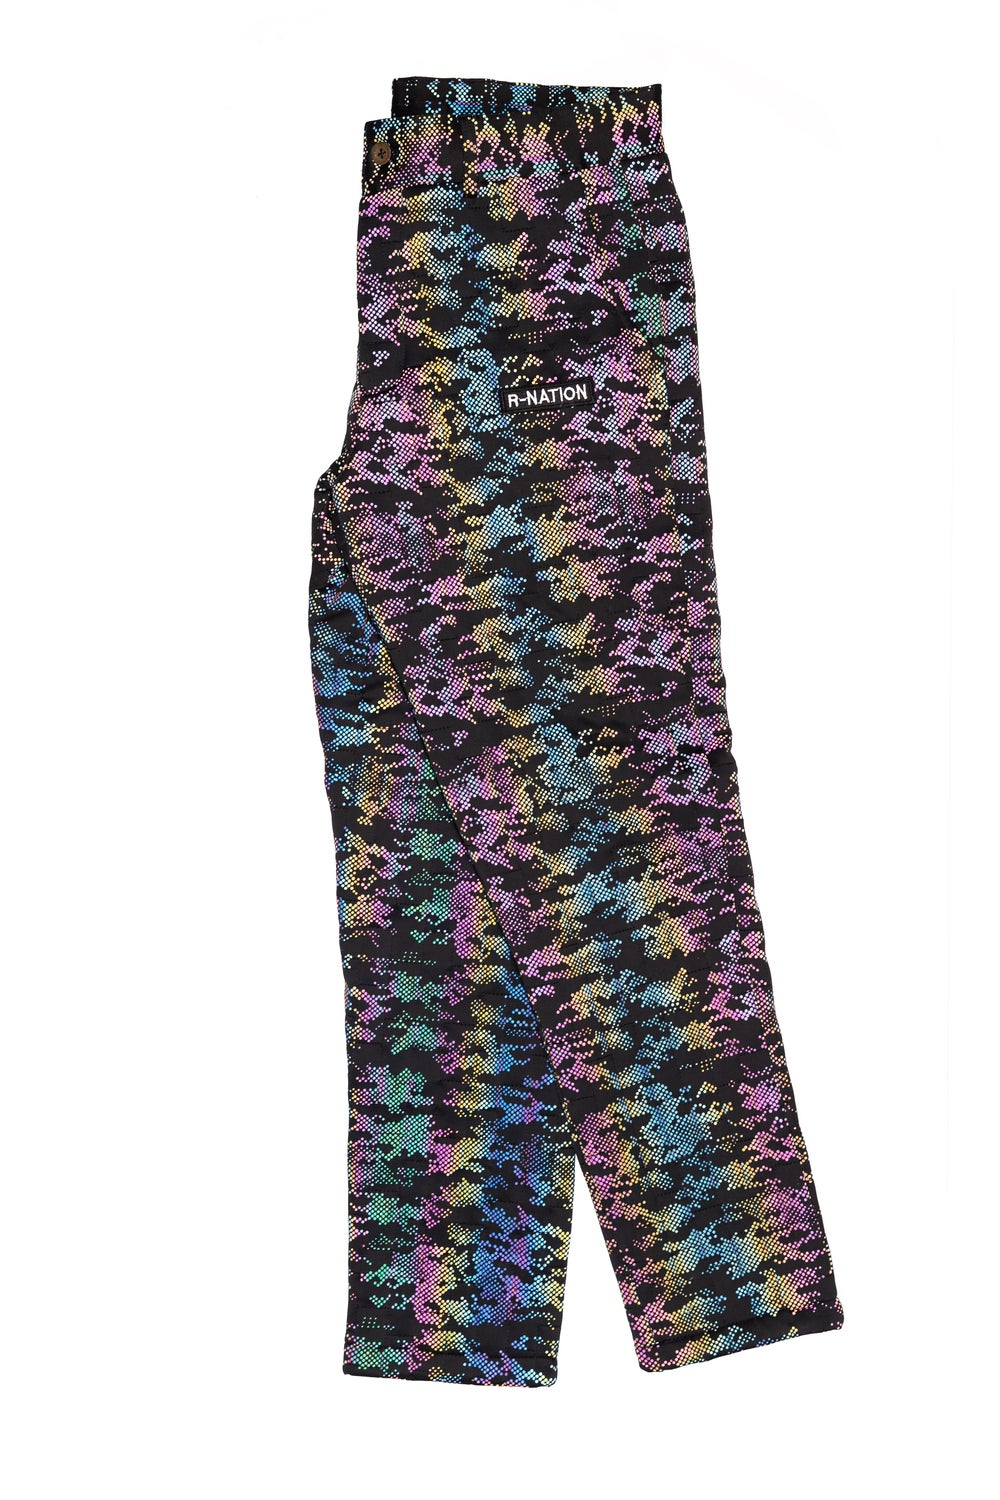 Image of R-NATION CAMO PANT